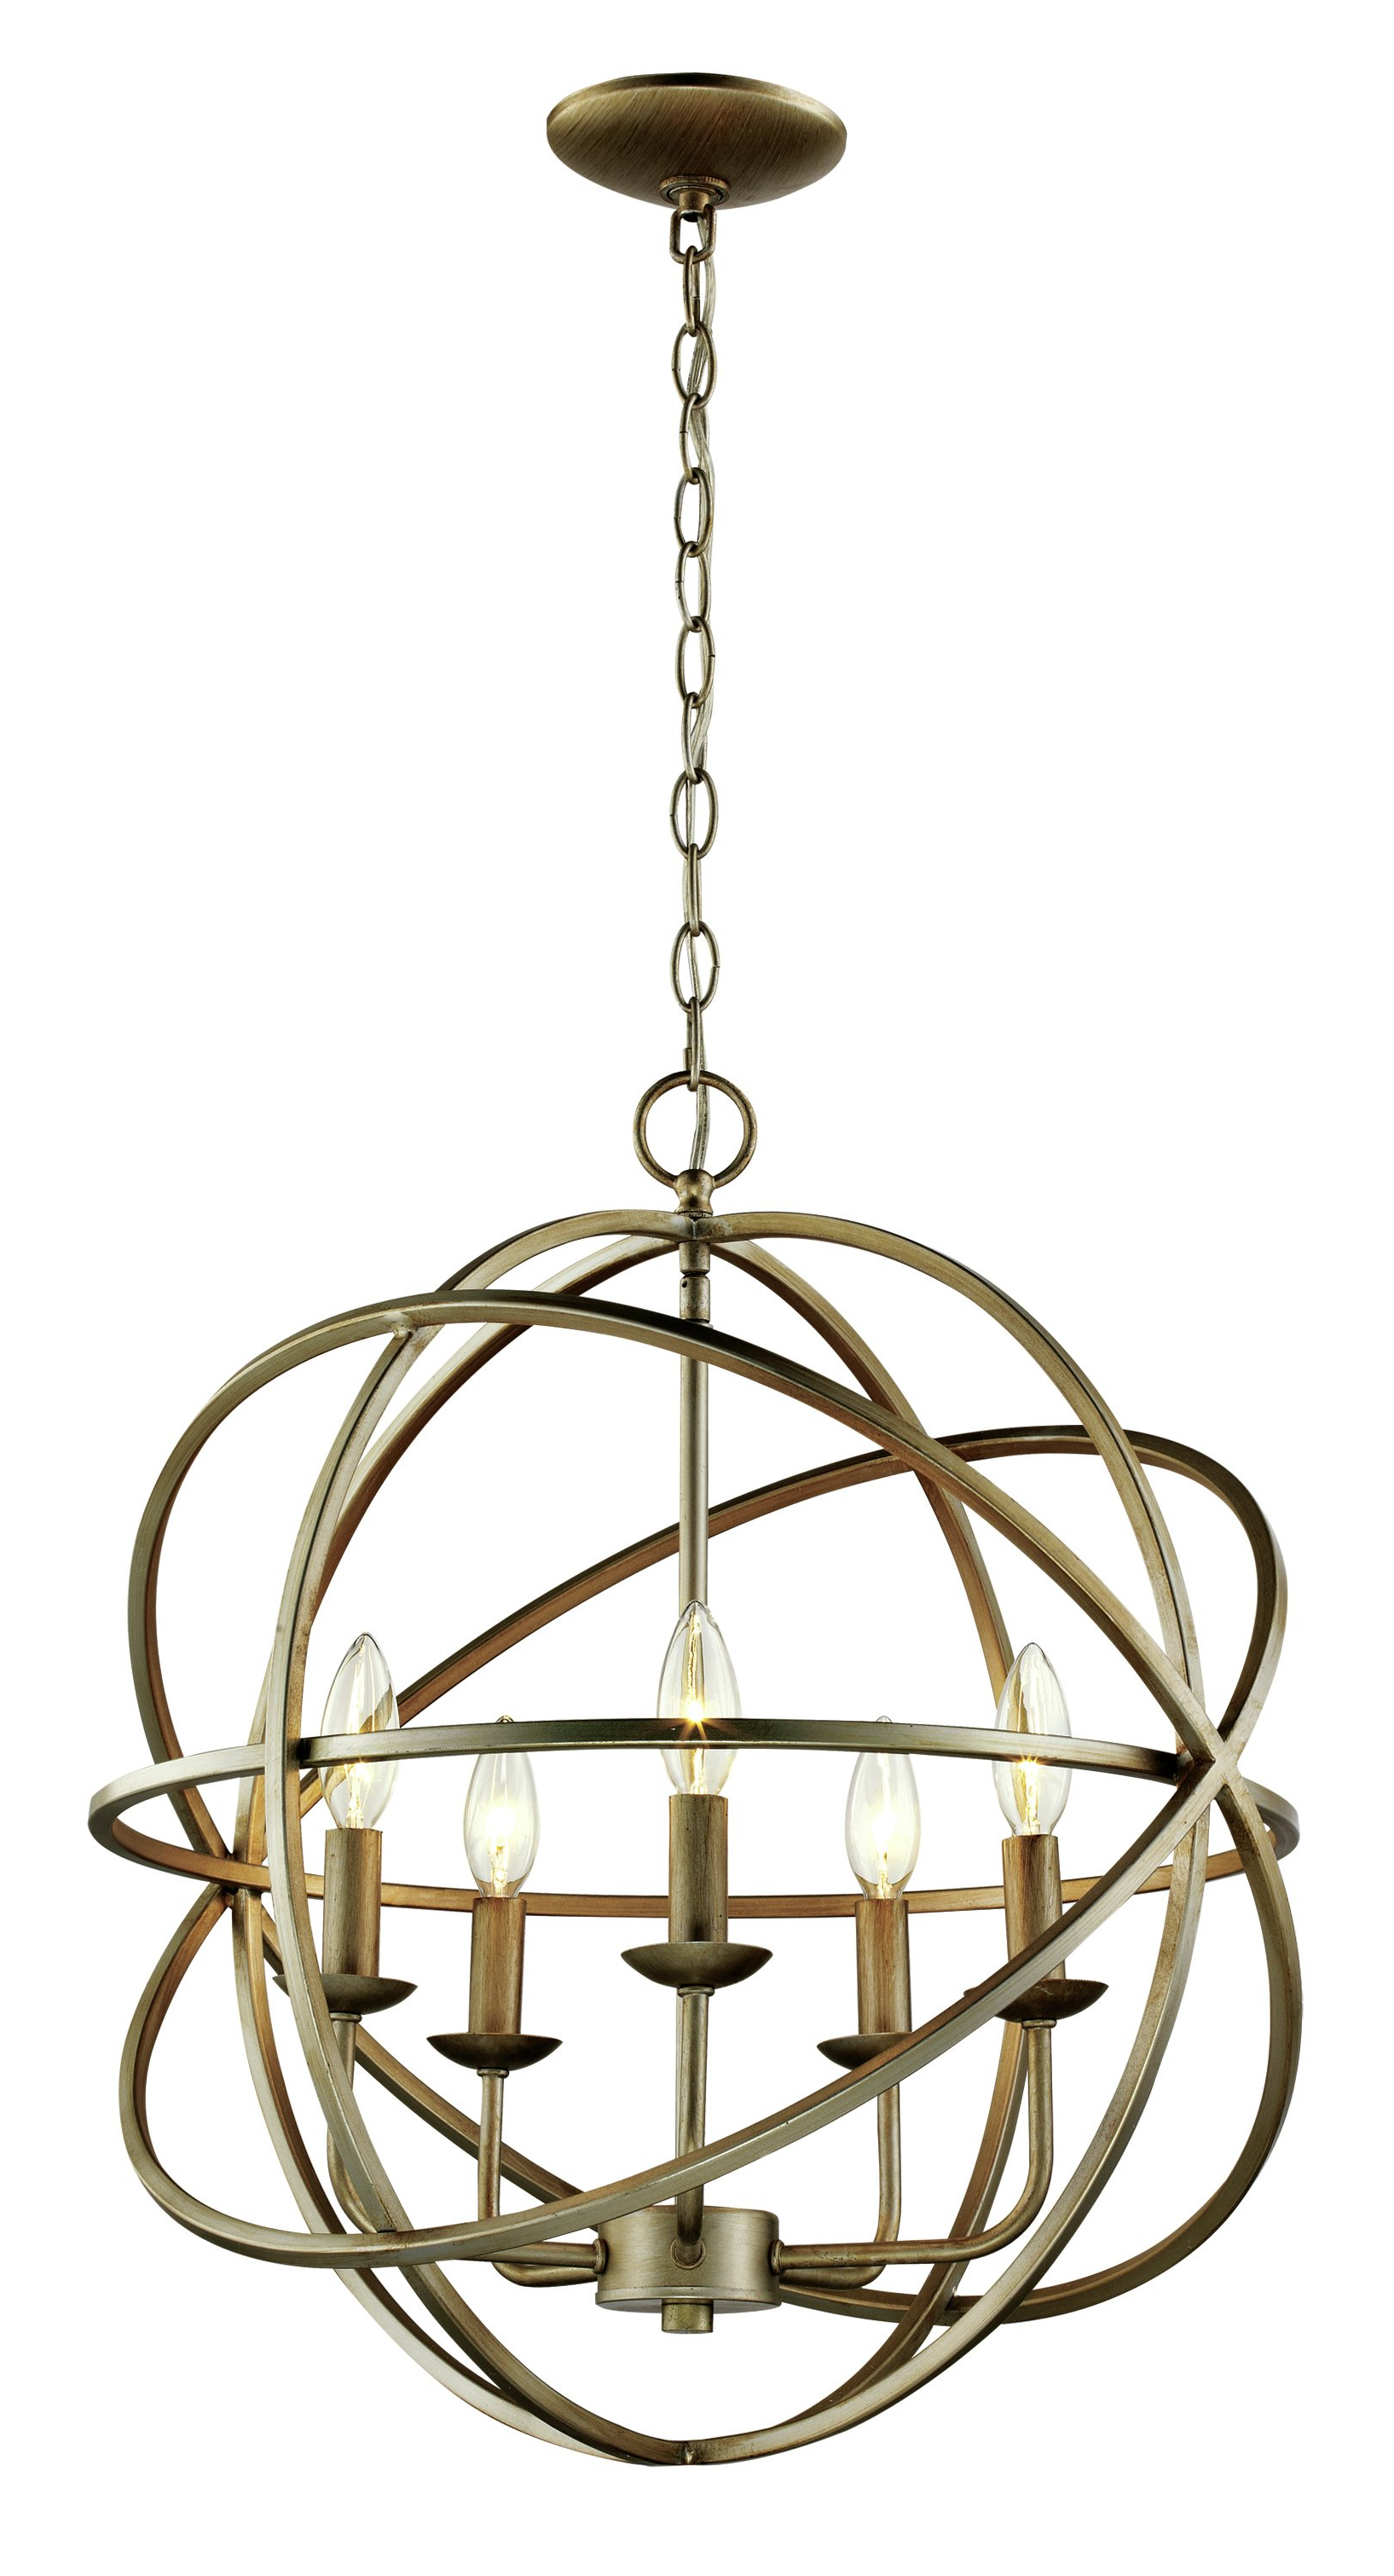 Waldron 5 Light Globe Chandeliers Regarding Popular Hankinson 5 Light Globe Chandelier (View 17 of 20)